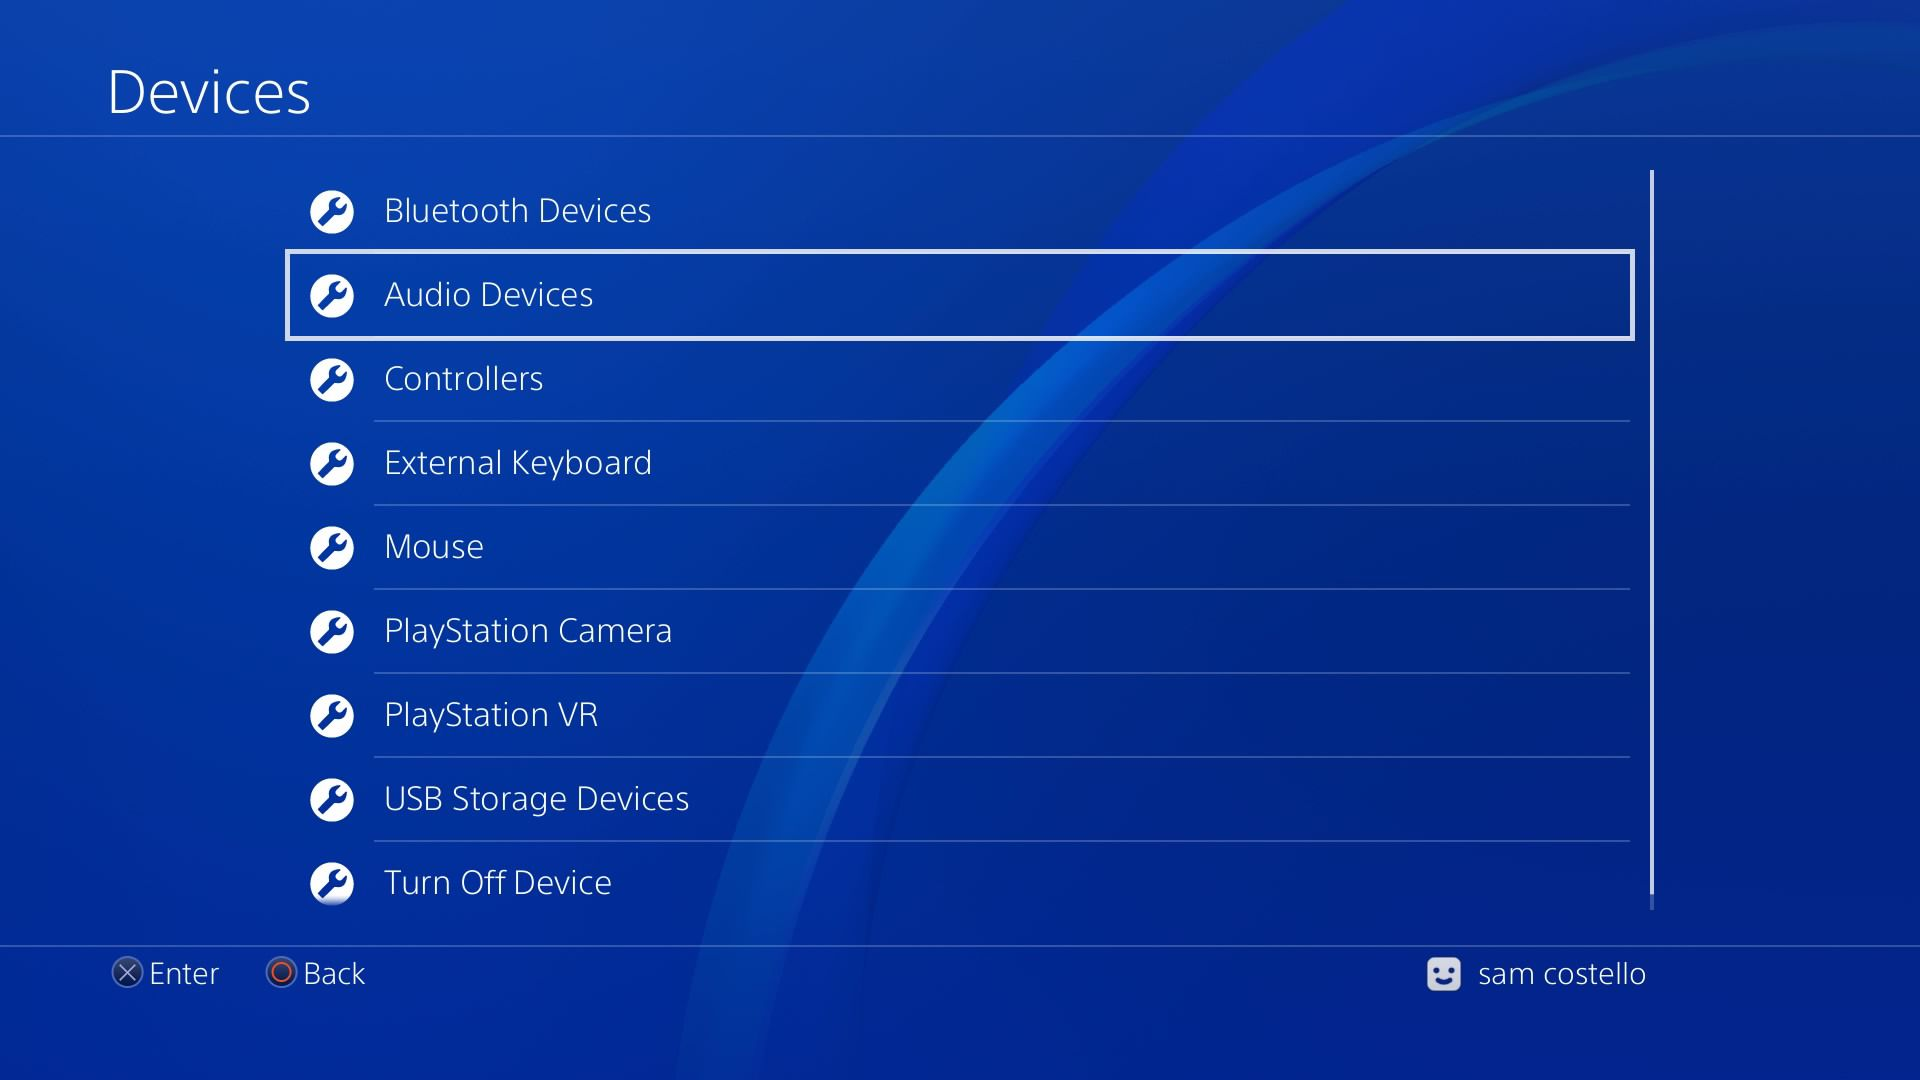 Screenshot of the PS4 devices menu